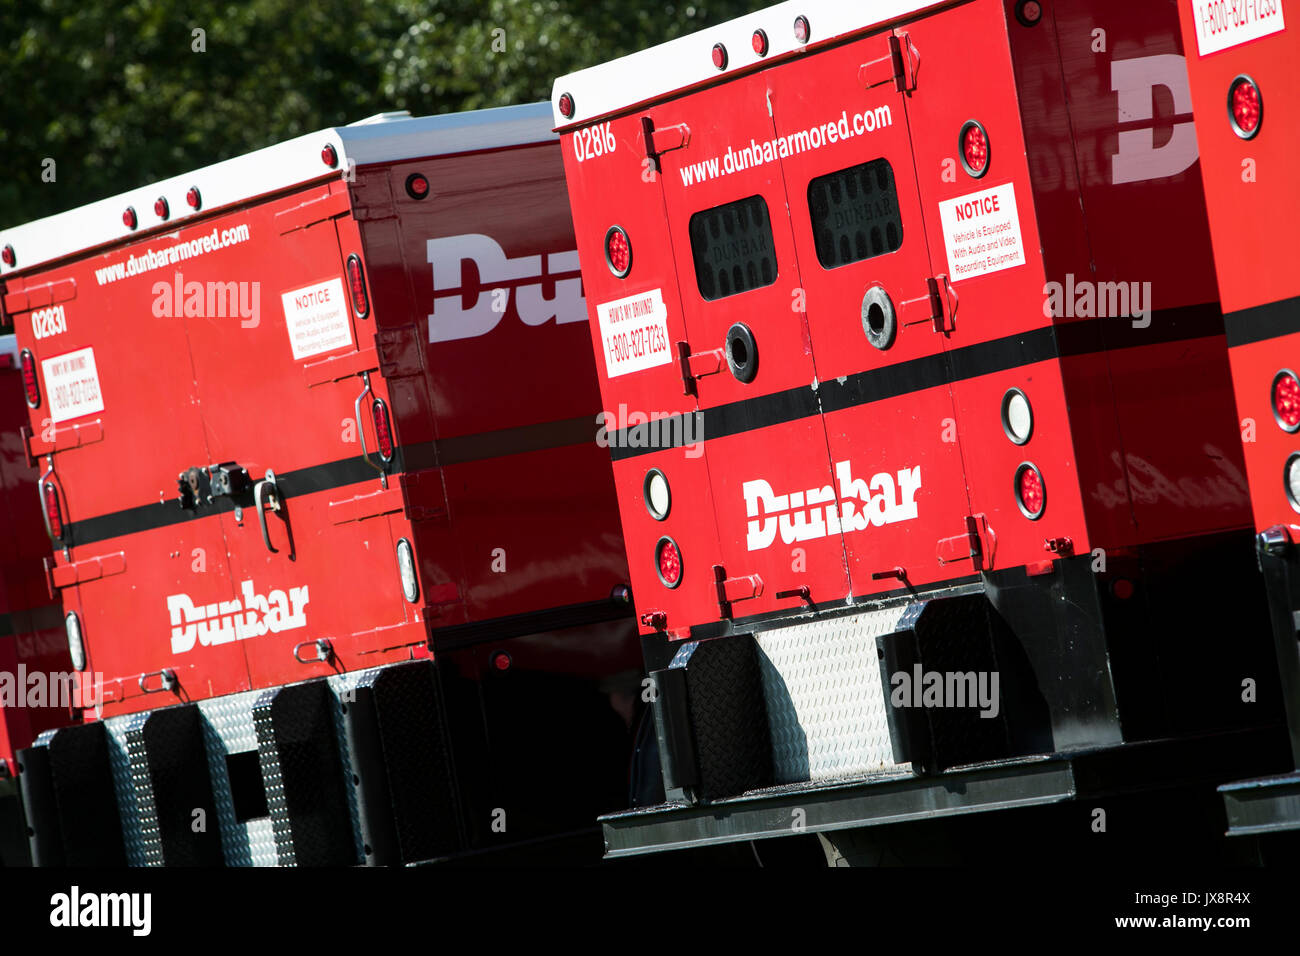 A row of Dunbar Armored trucks in Beltsville, Maryland, on August 13, 2017. - Stock Image